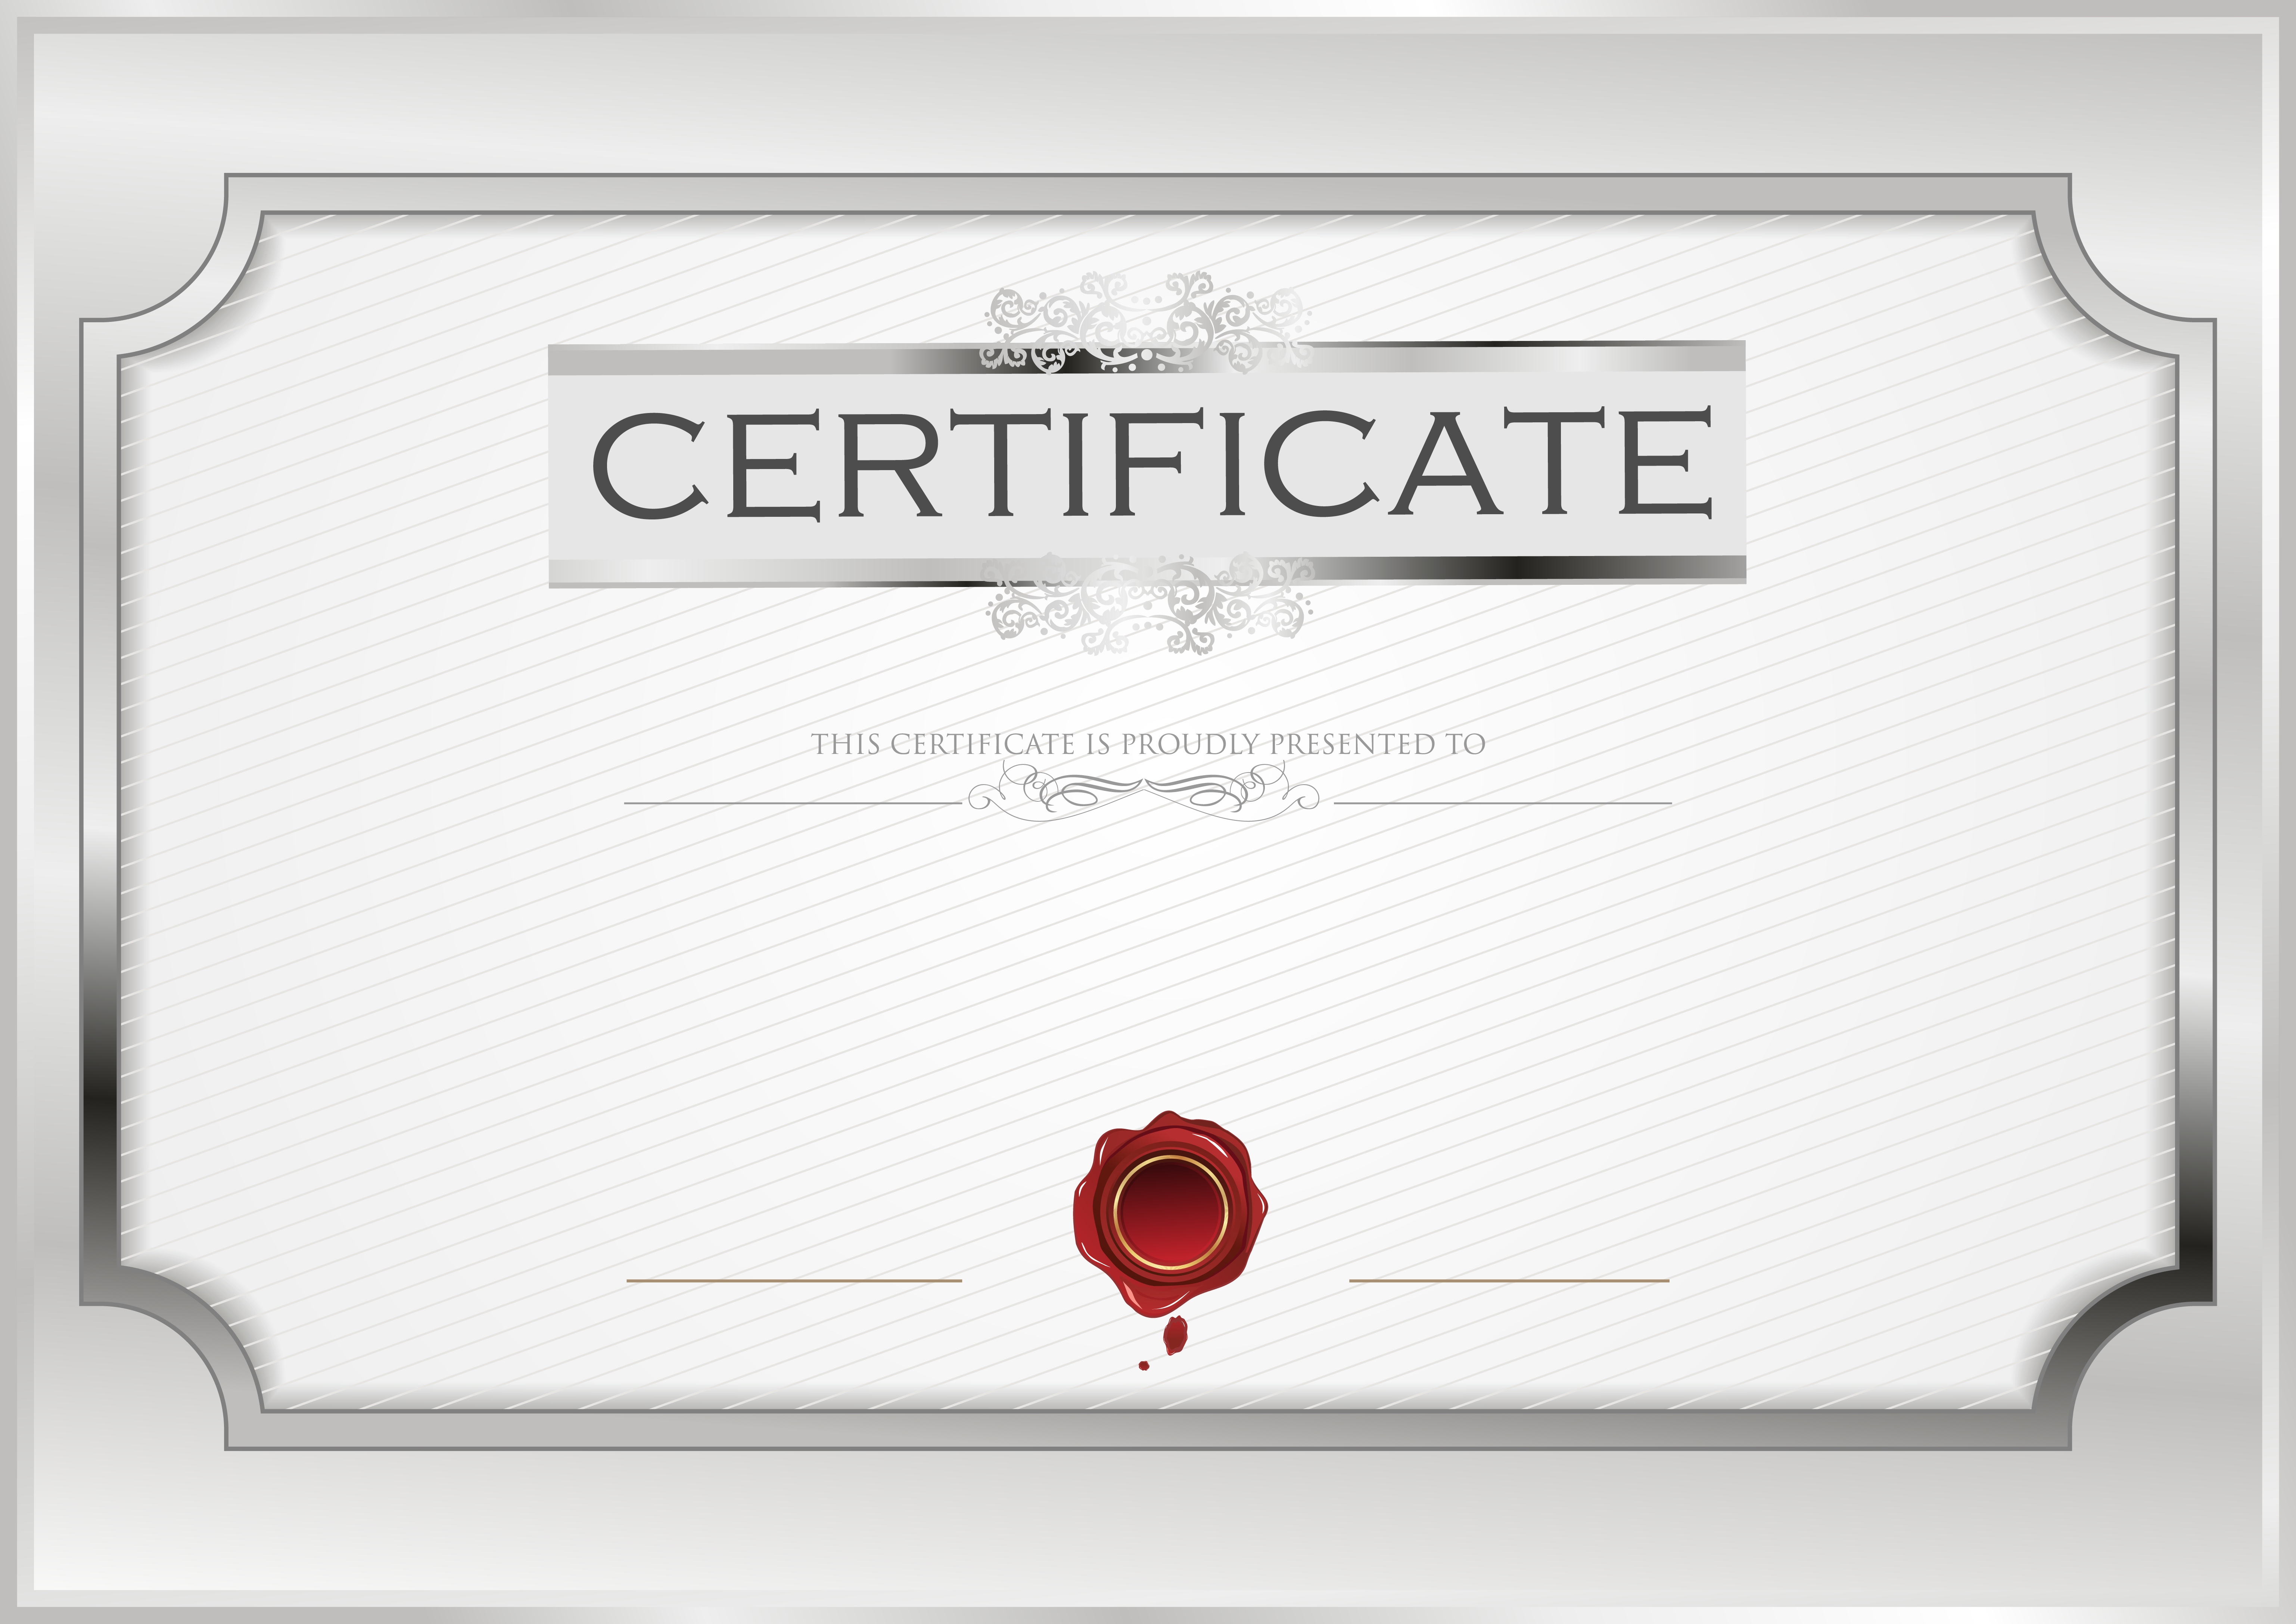 Certificate template blank image gallery yopriceville high certificate template blank image gallery yopriceville high quality images and transparent png yadclub Images